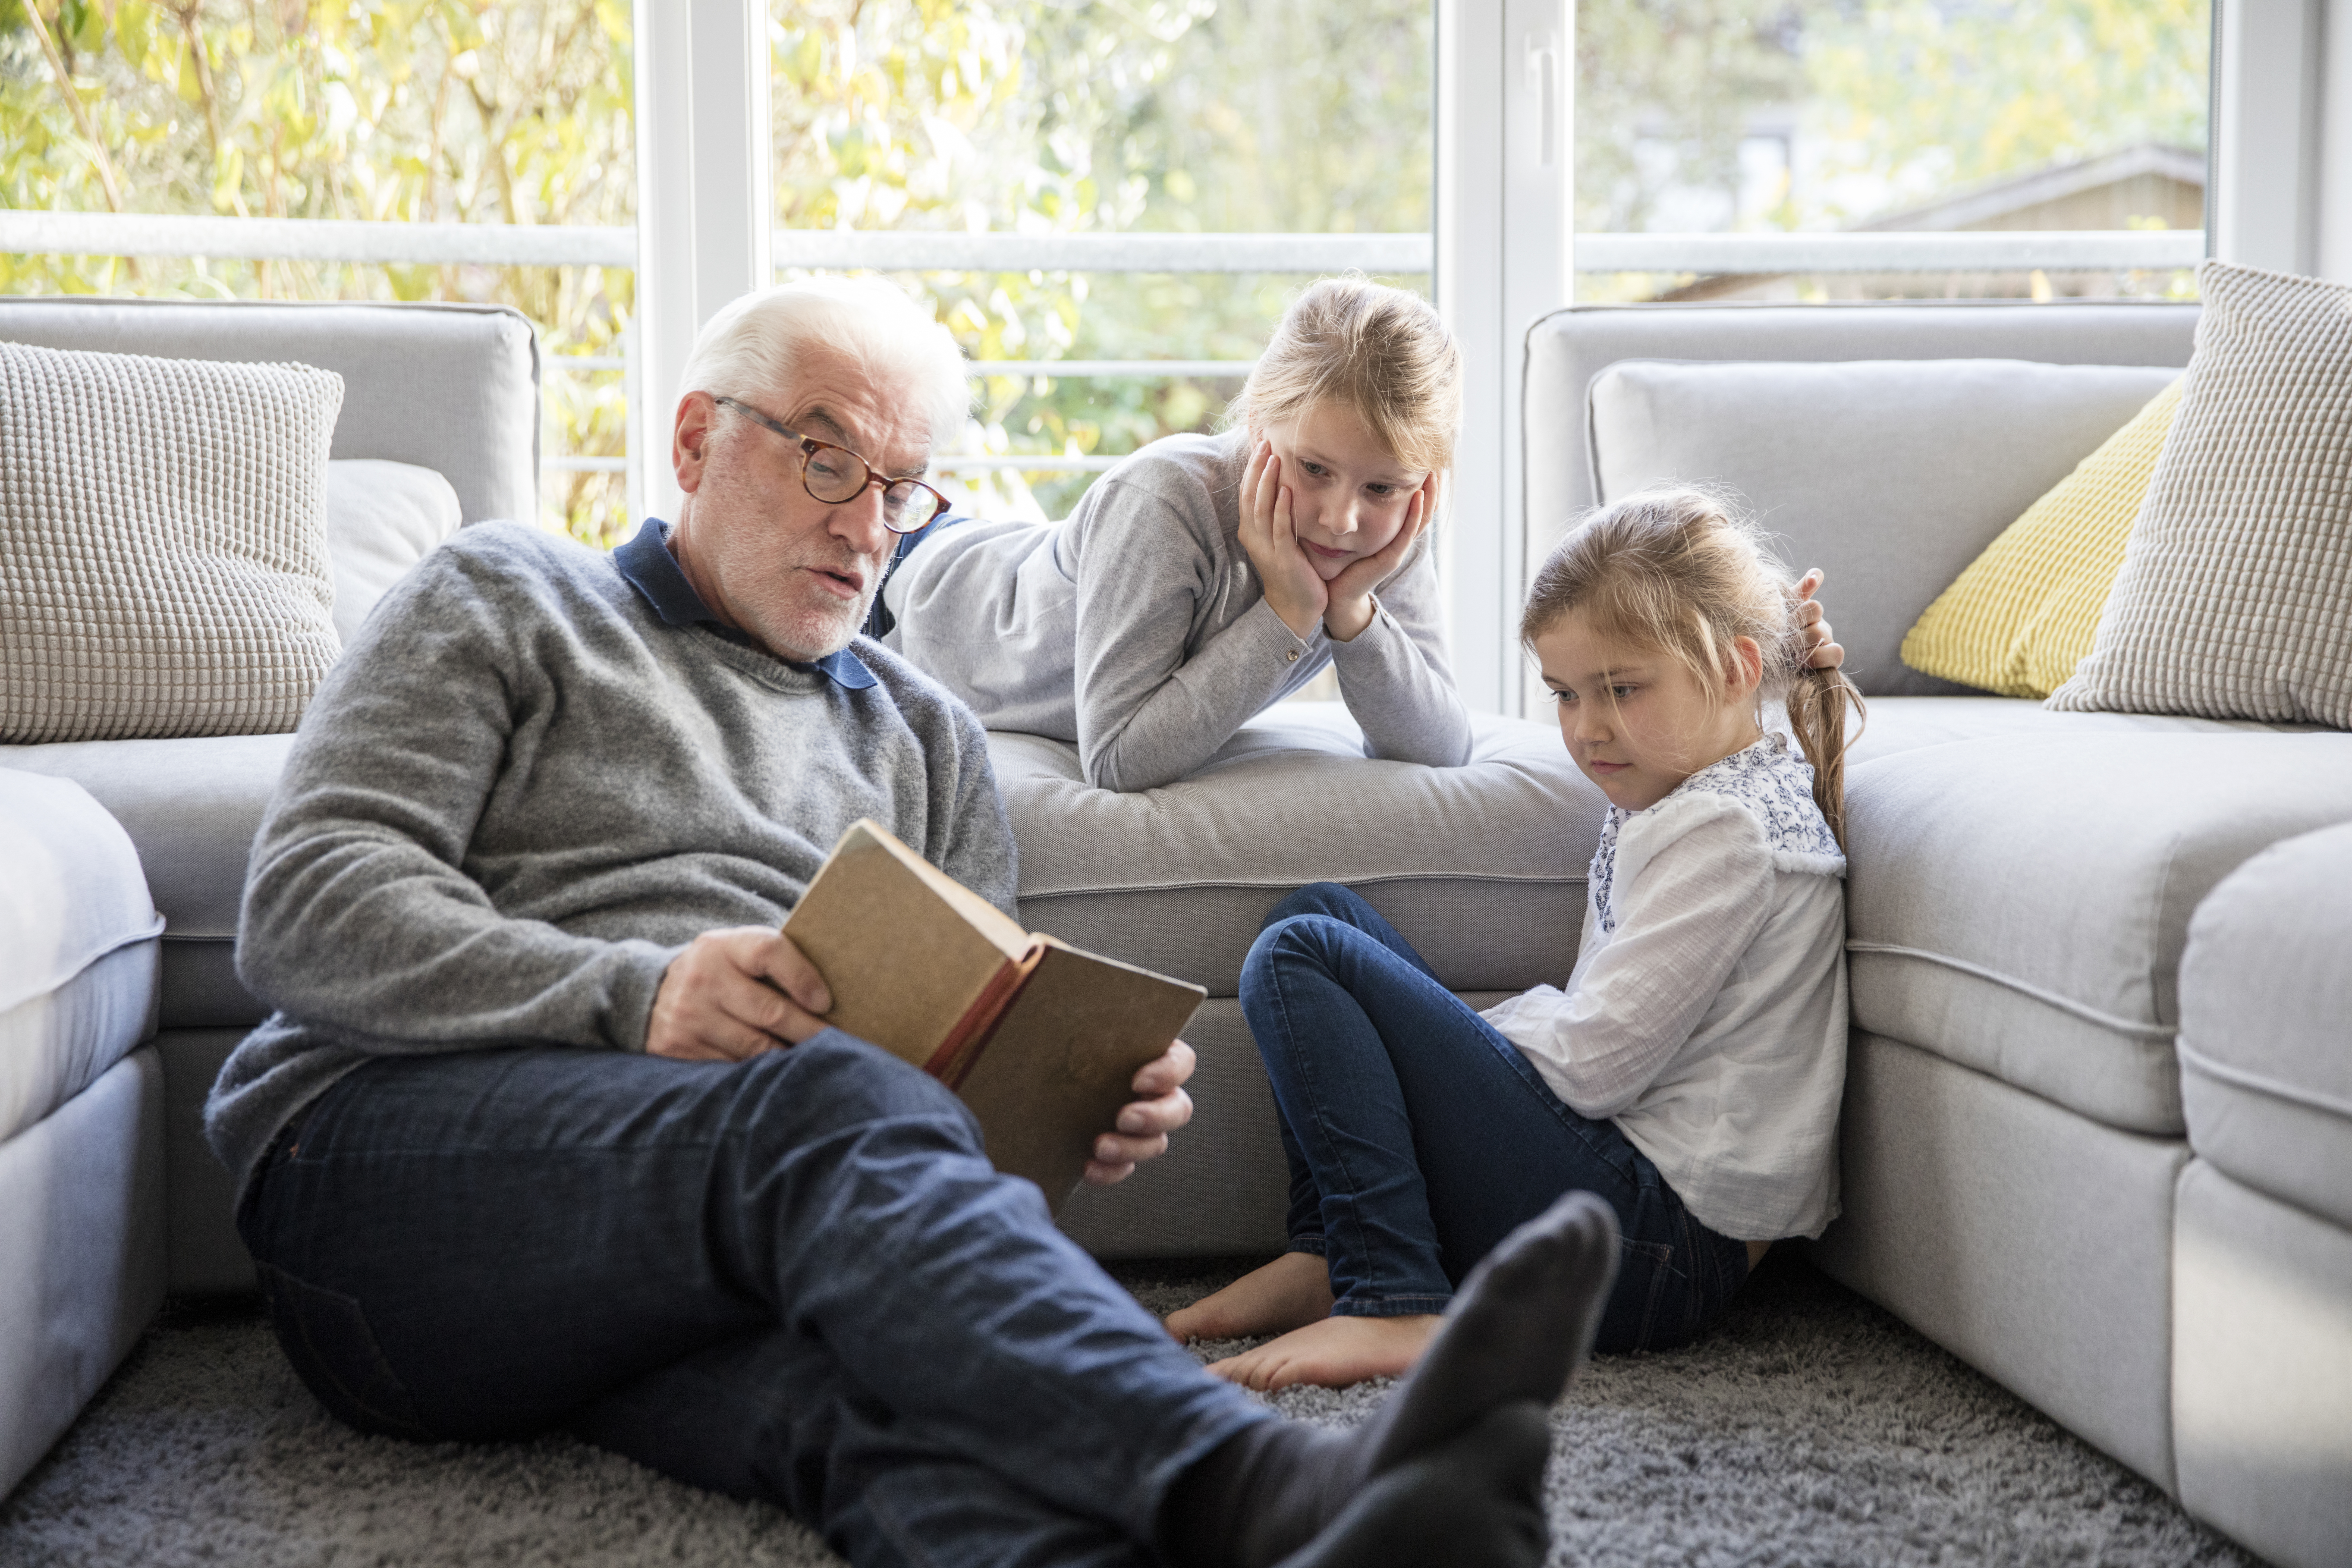 How Can I Get Emergency Guardianship of My Grandchild?